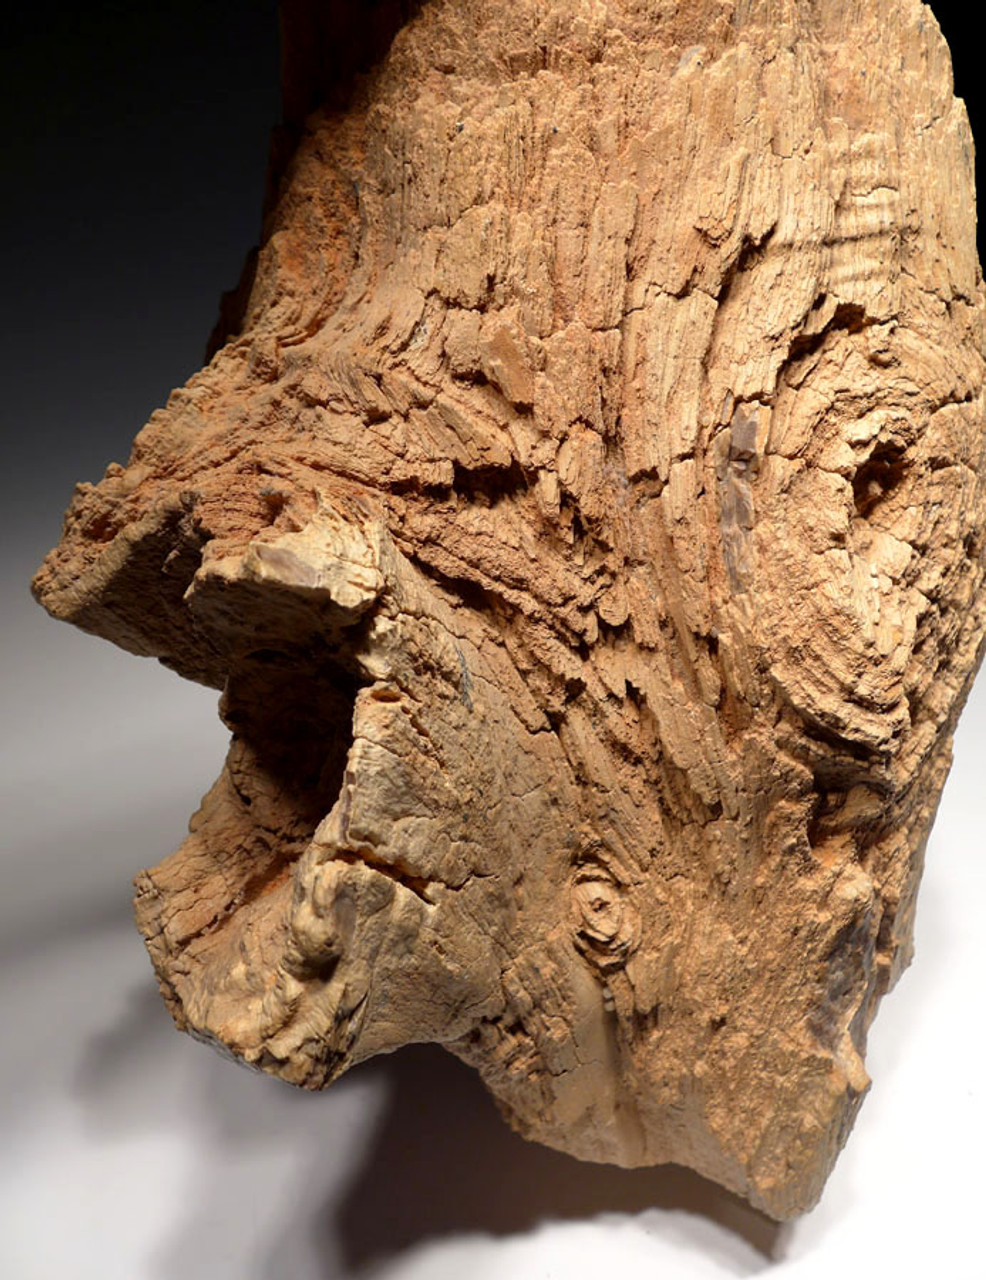 EXTREMELY RARE LIFELIKE PETRIFIED TREE LOG WITH KNOTS FROM THE SAHARA DESERT *PW001